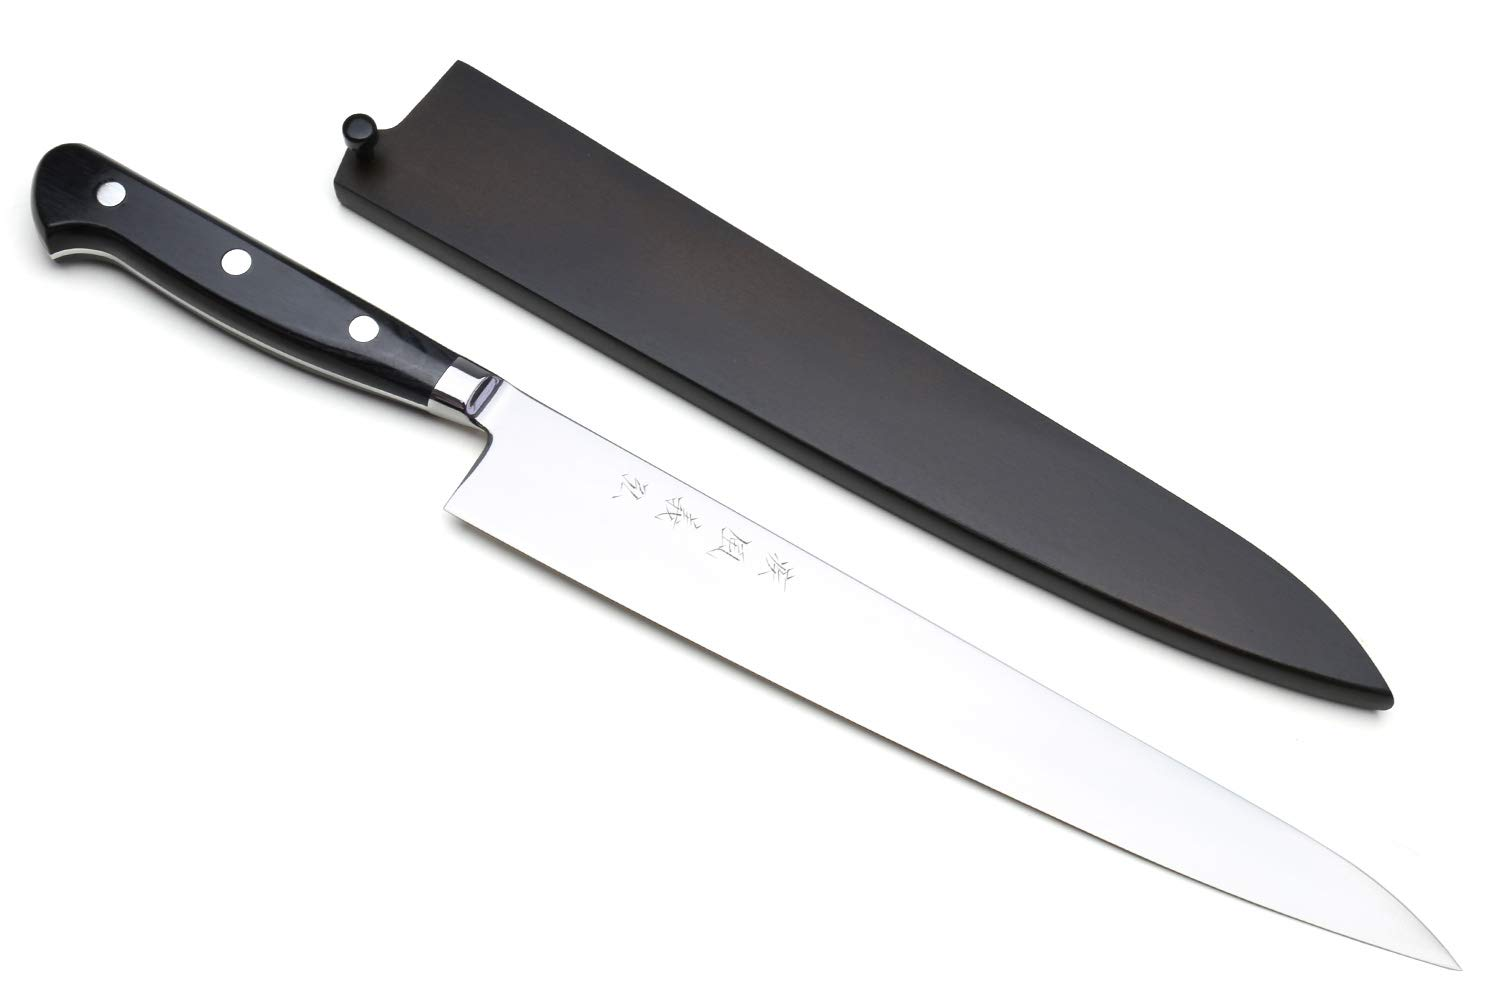 Yoshihiro High Speed Steel Sujihiki Slicer Knife (Black Pakkawood Handle) (10.5''/270mm)